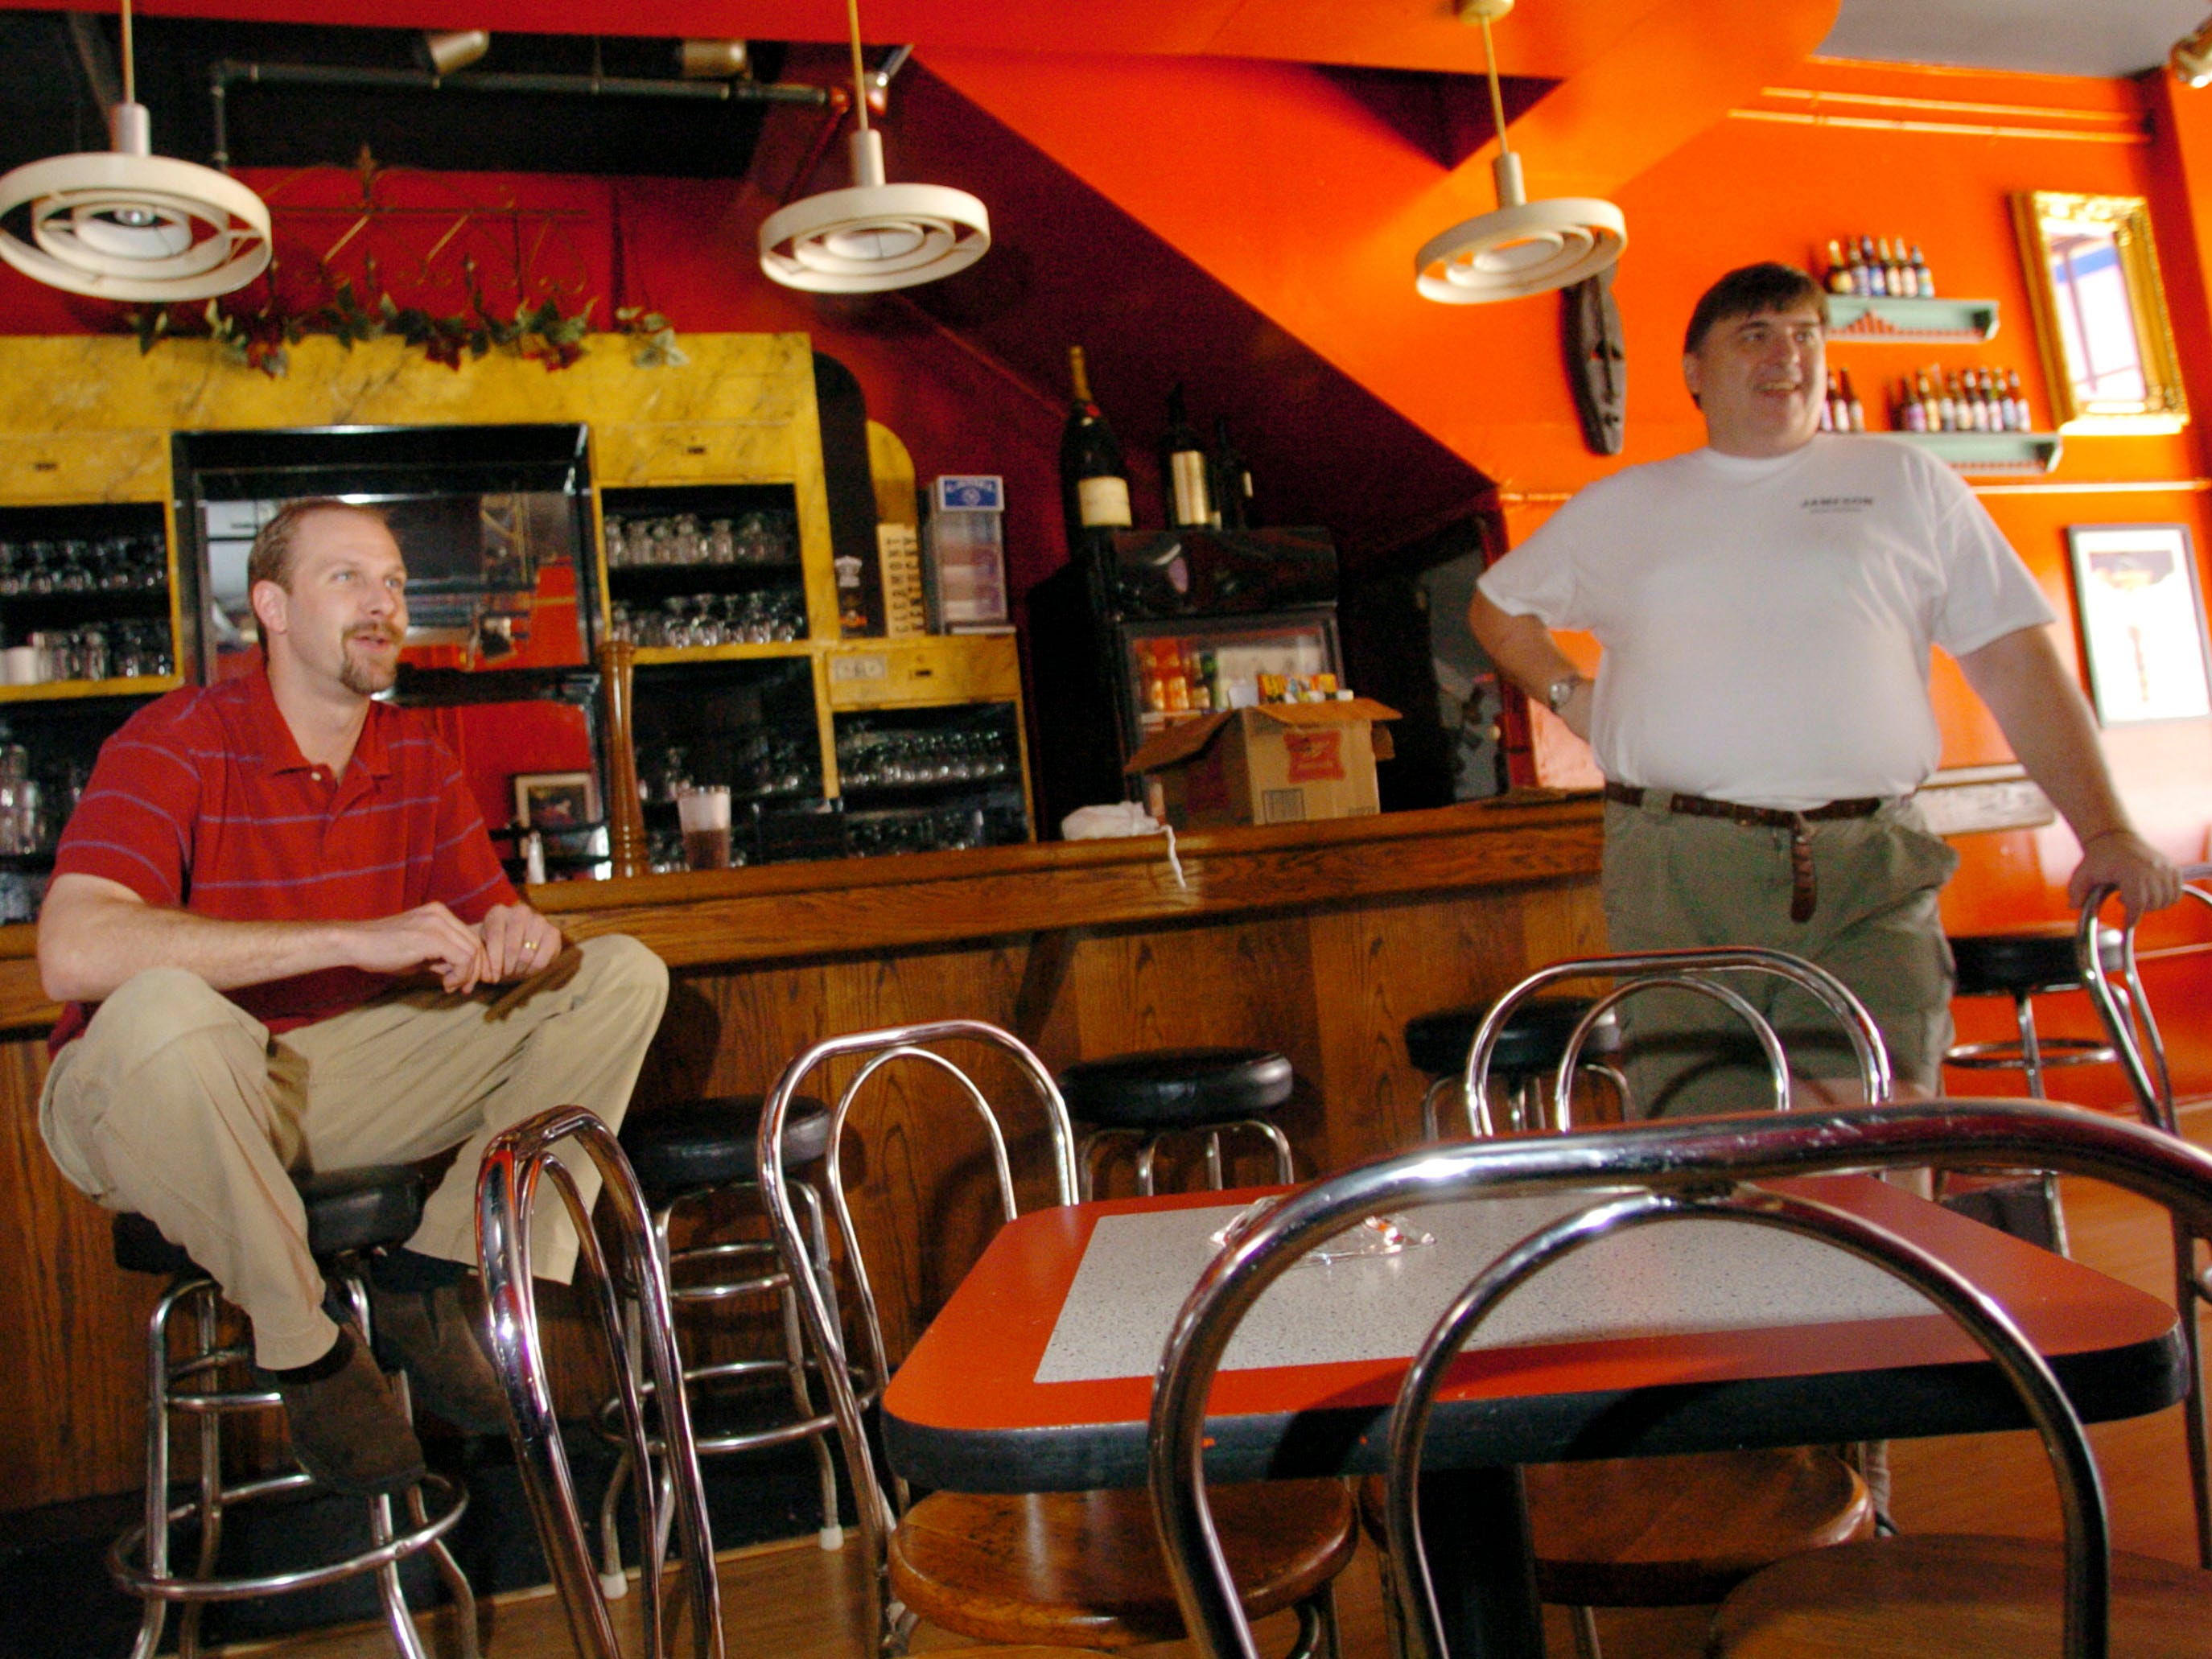 Lucille's general Manager Sean Blair, left, and owner Frank Gardner talk about the future of the popular Old City night spot in 2004. The eatery will be kept open as part of their Partick Sullivan's restaurant and will have a more casual atmosphere.